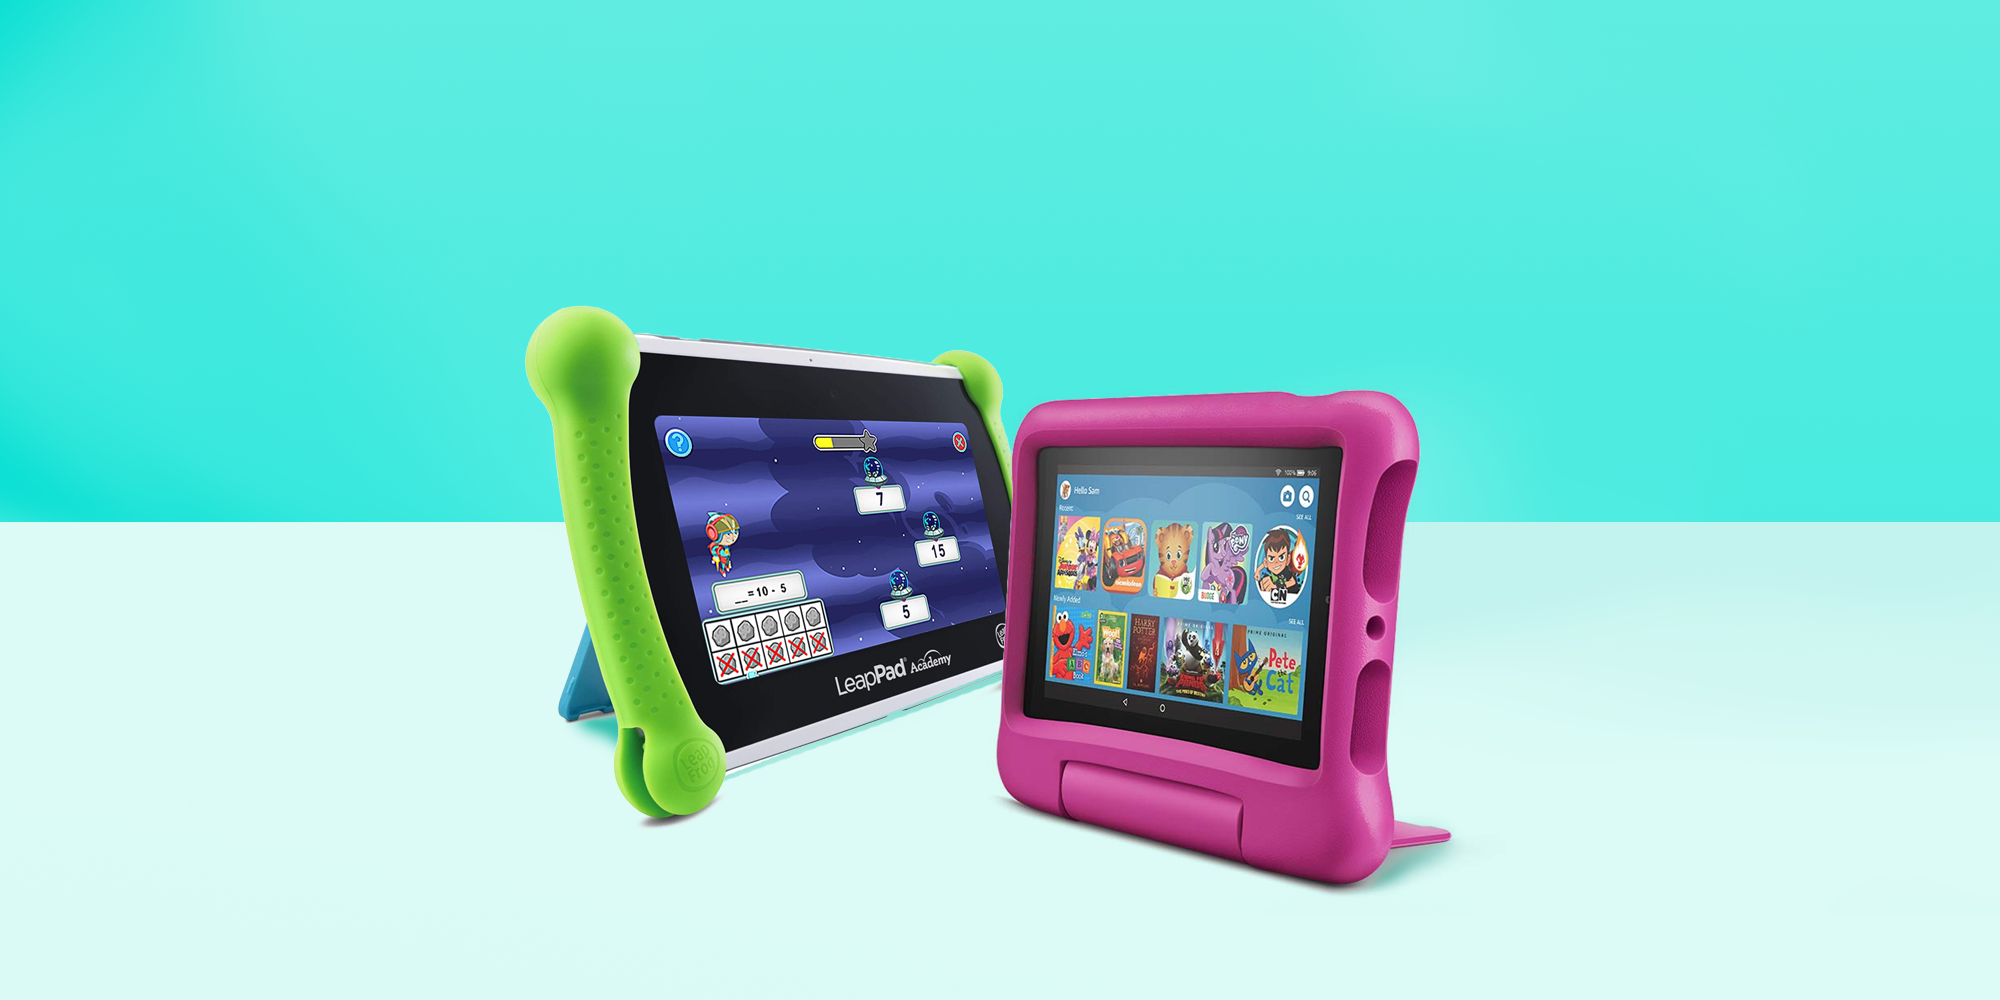 Kids iPhone Tablet Educational Toys 1 2 Year Old Toddler Learning Xmas Gift